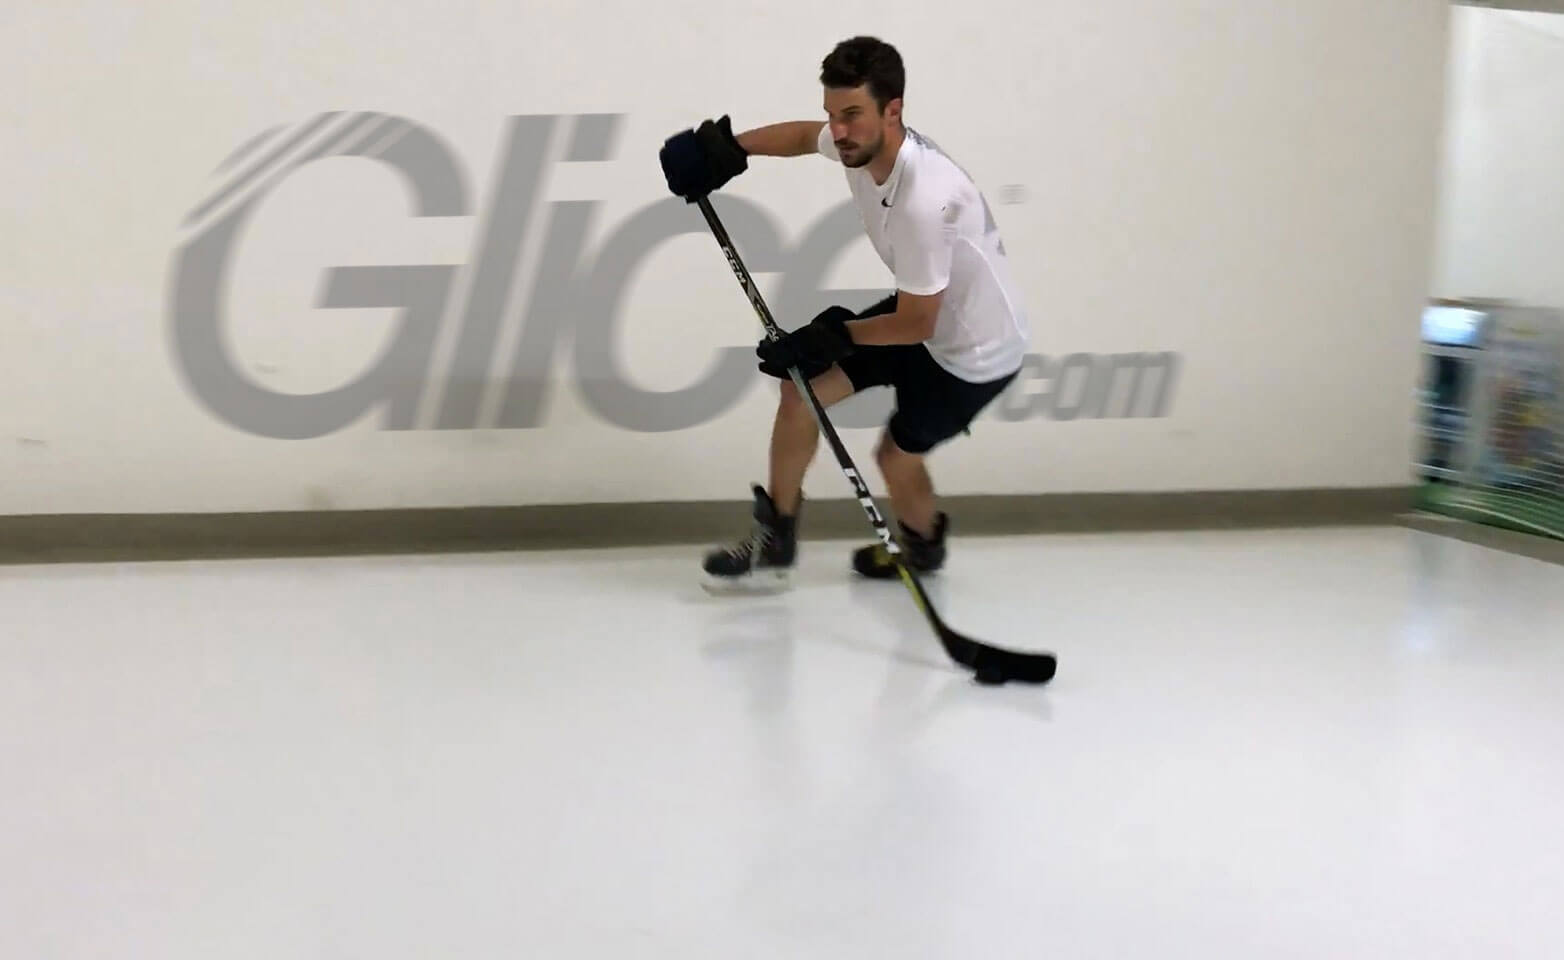 NHL Star Roman Josi practicing on synthetic ice rink